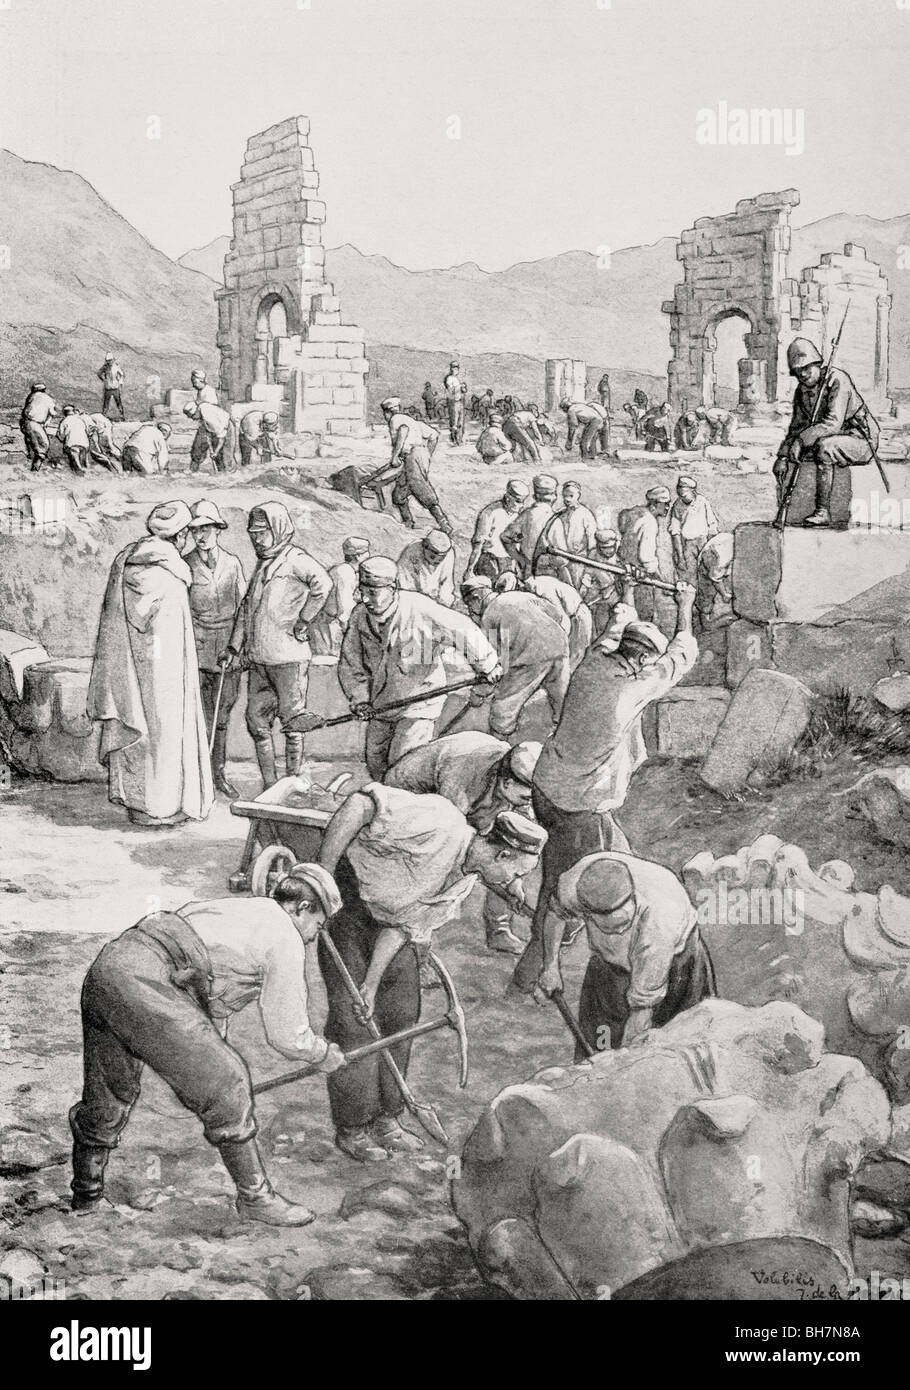 German prisoners of war at work excavating ruins of the Roman city of Volubilis, Morocco, during First World War. - Stock Image